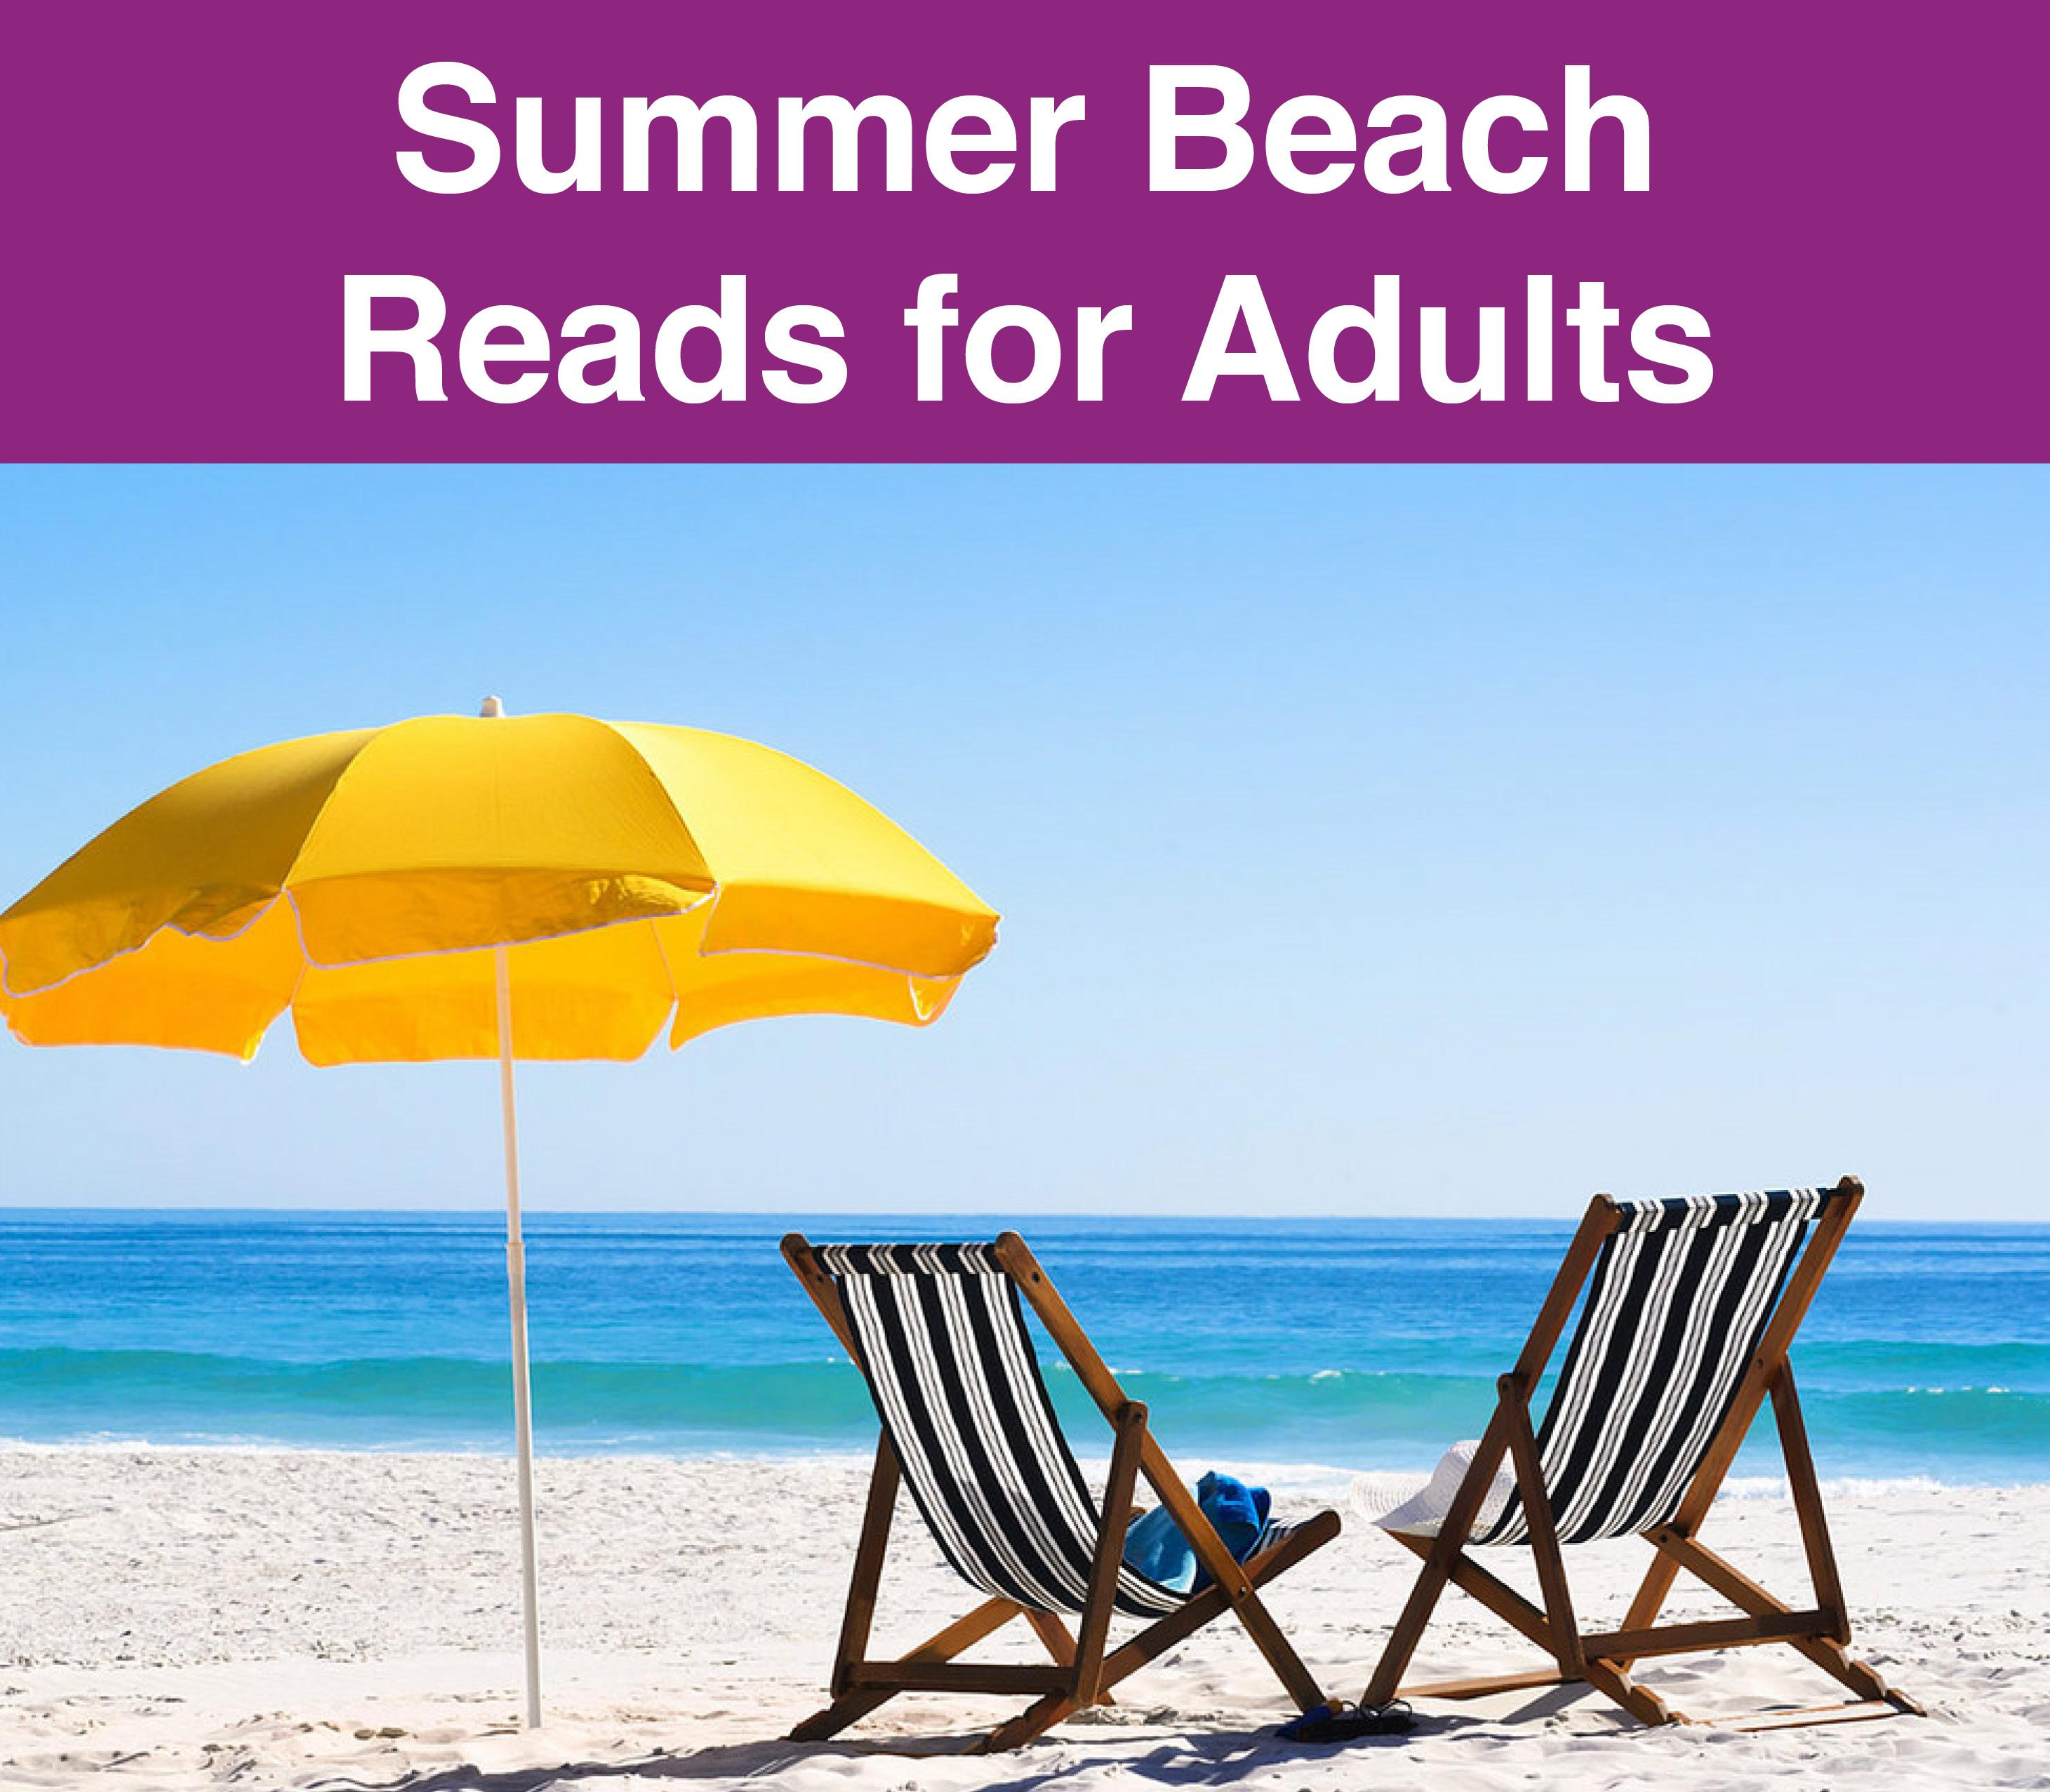 Header: Summer beach Reads. Image: Yellow umbrella and two chairs on a beach with the ocean in the background.